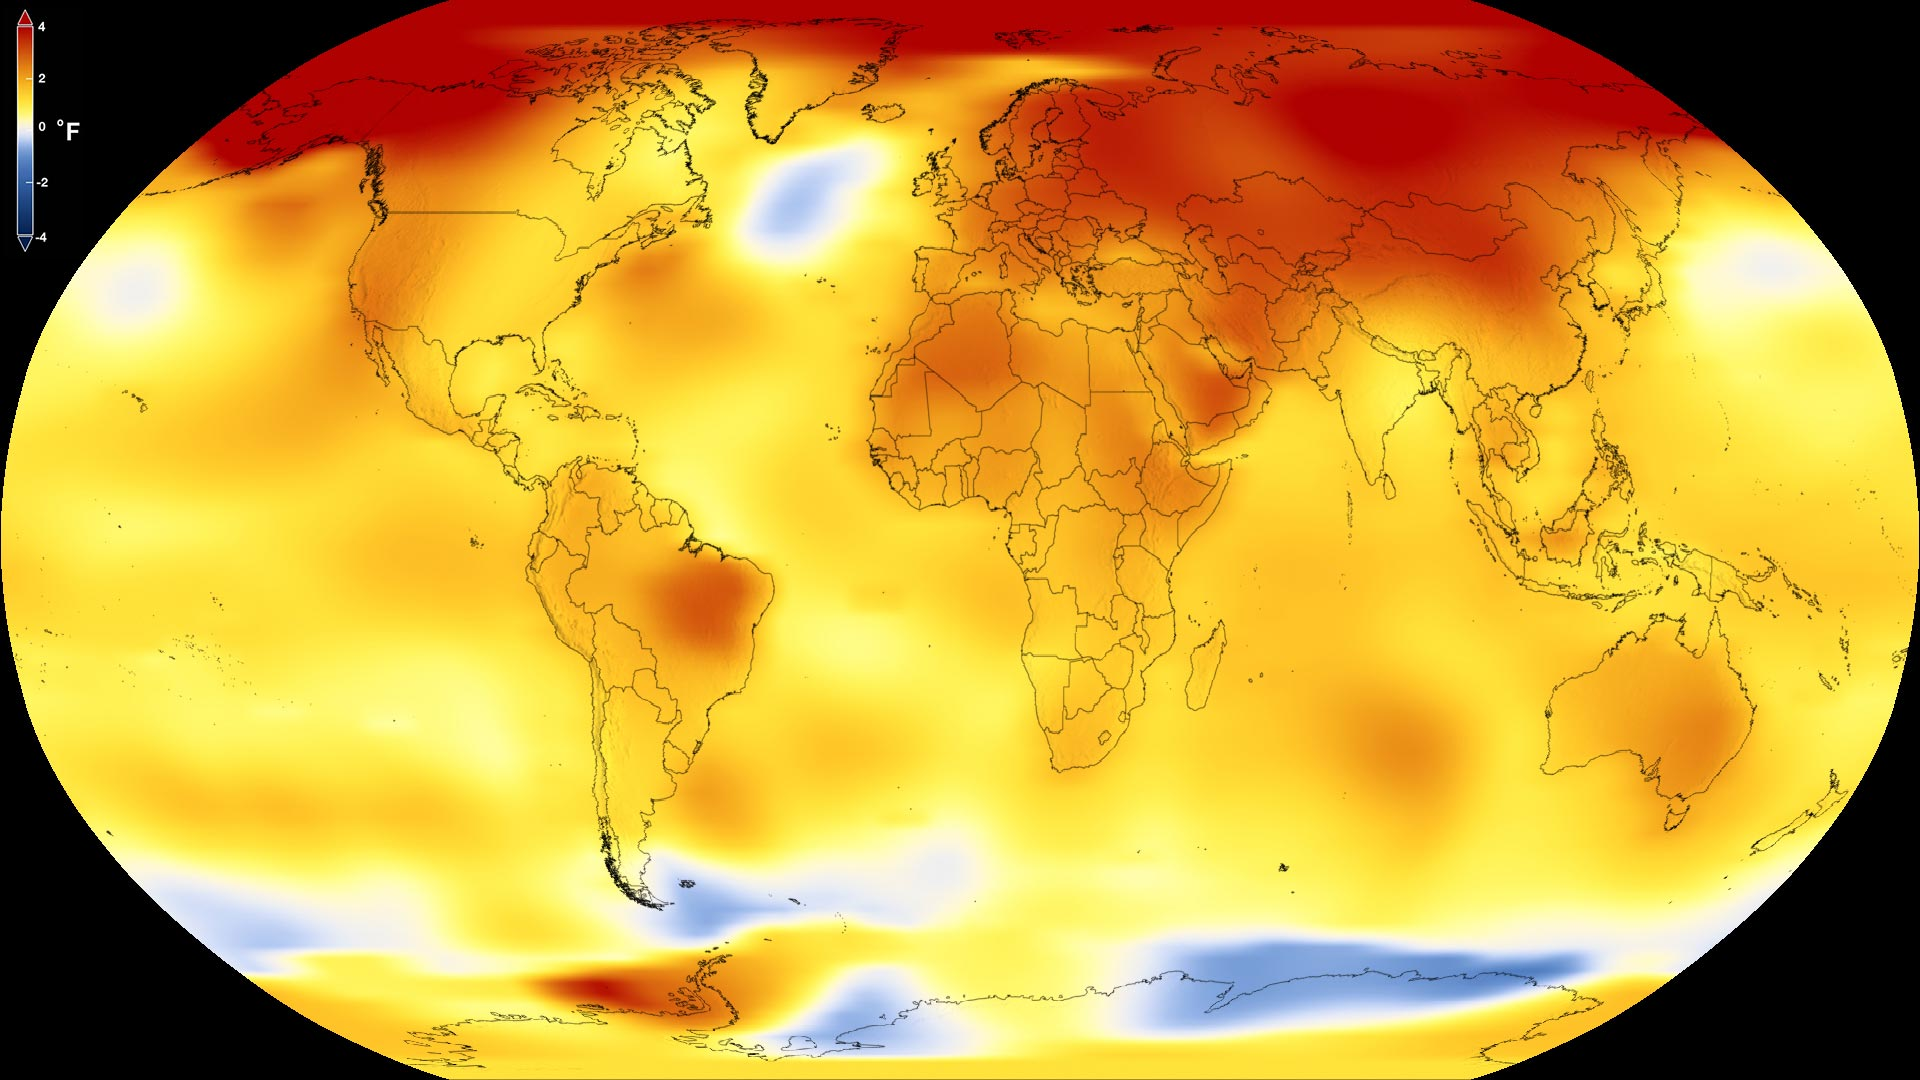 This map shows Earth's average global temperature from 2013 to 2017, as compared to a baseline average from 1951 to 1980, according to an analysis by NASA's Goddard Institute for Space Studies. Yellows, oranges and reds show regions warmer than the baseline.